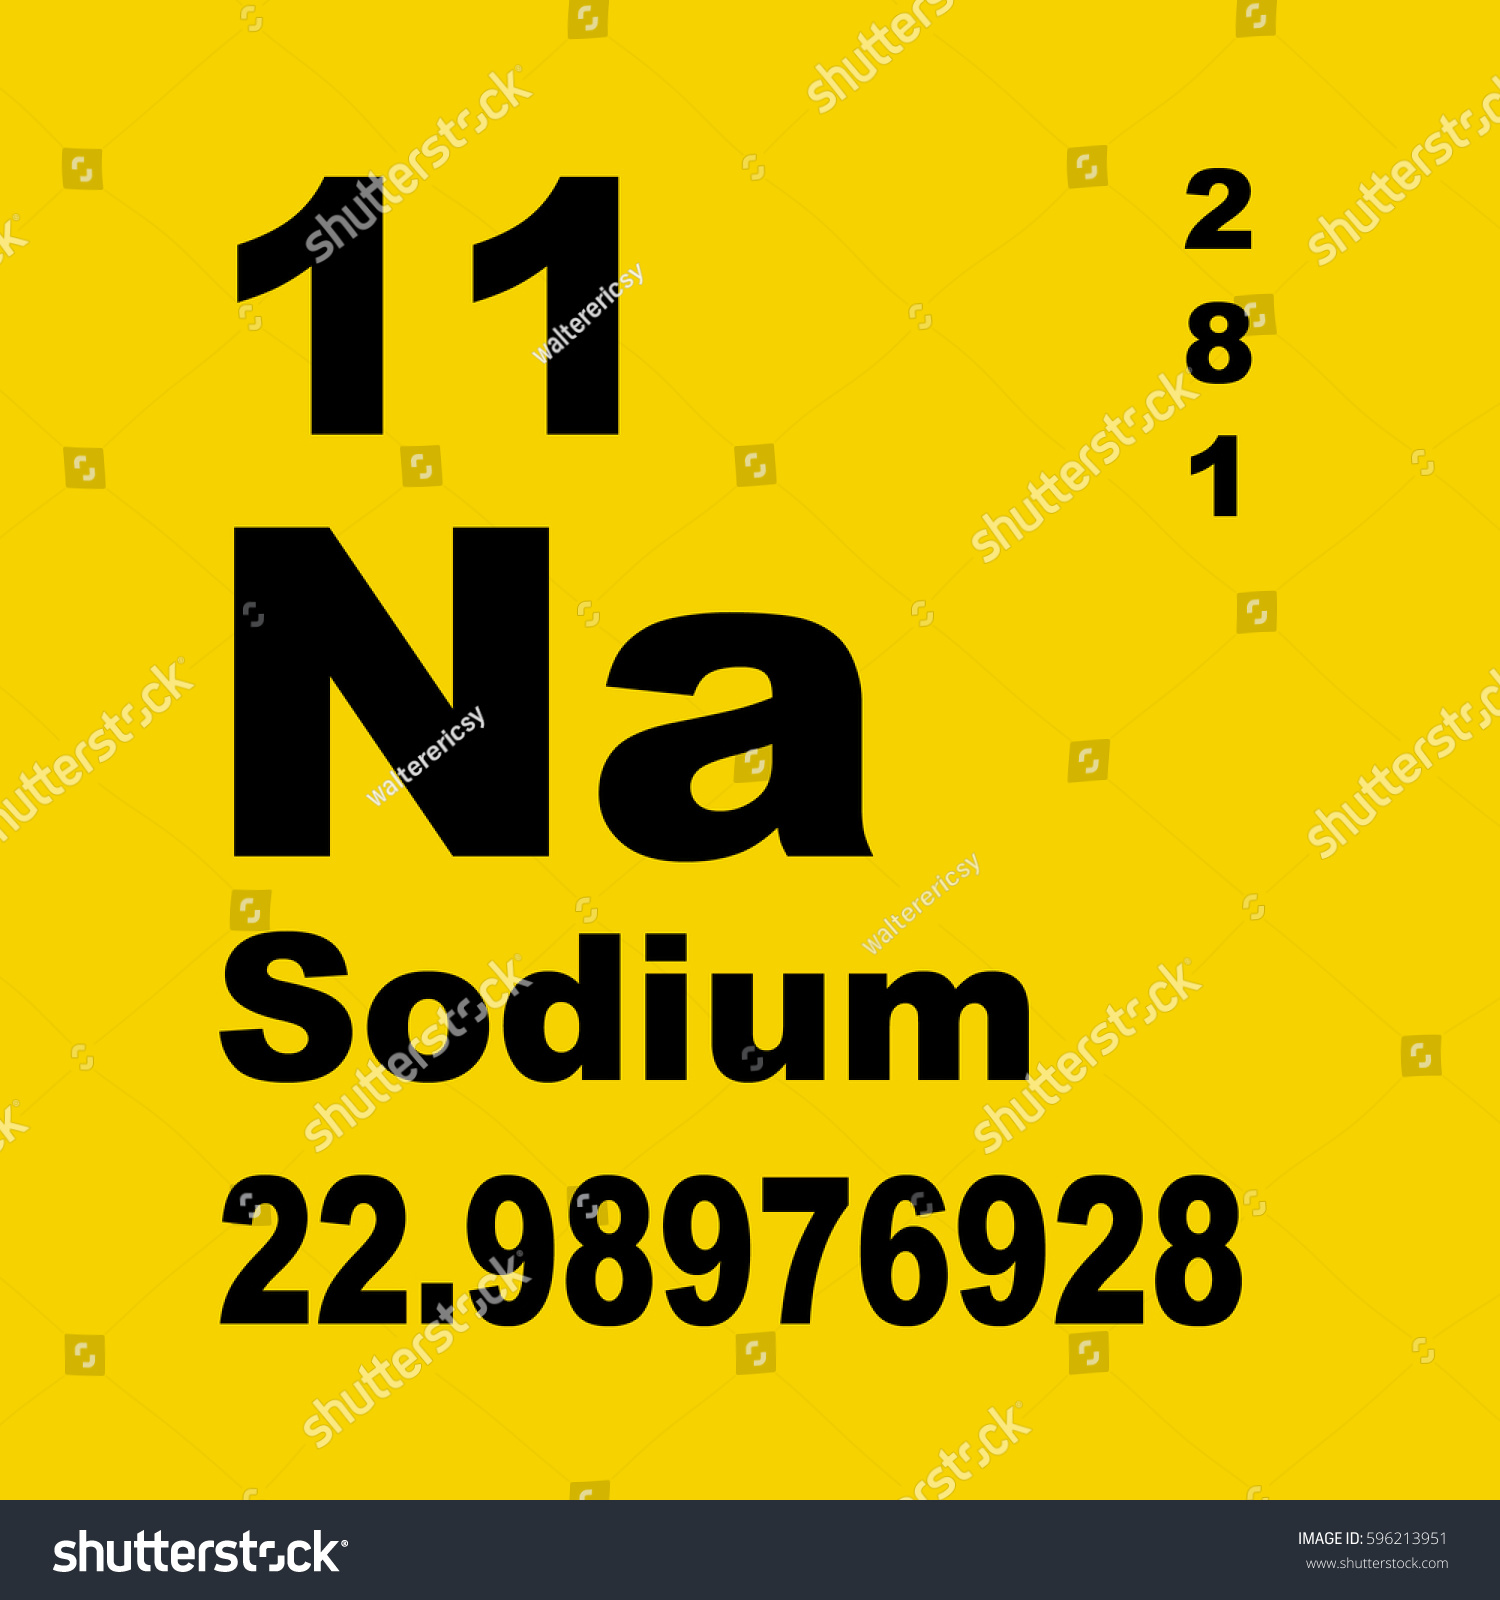 Sodium periodic table elements stock illustration 596213951 sodium periodic table of elements gamestrikefo Images